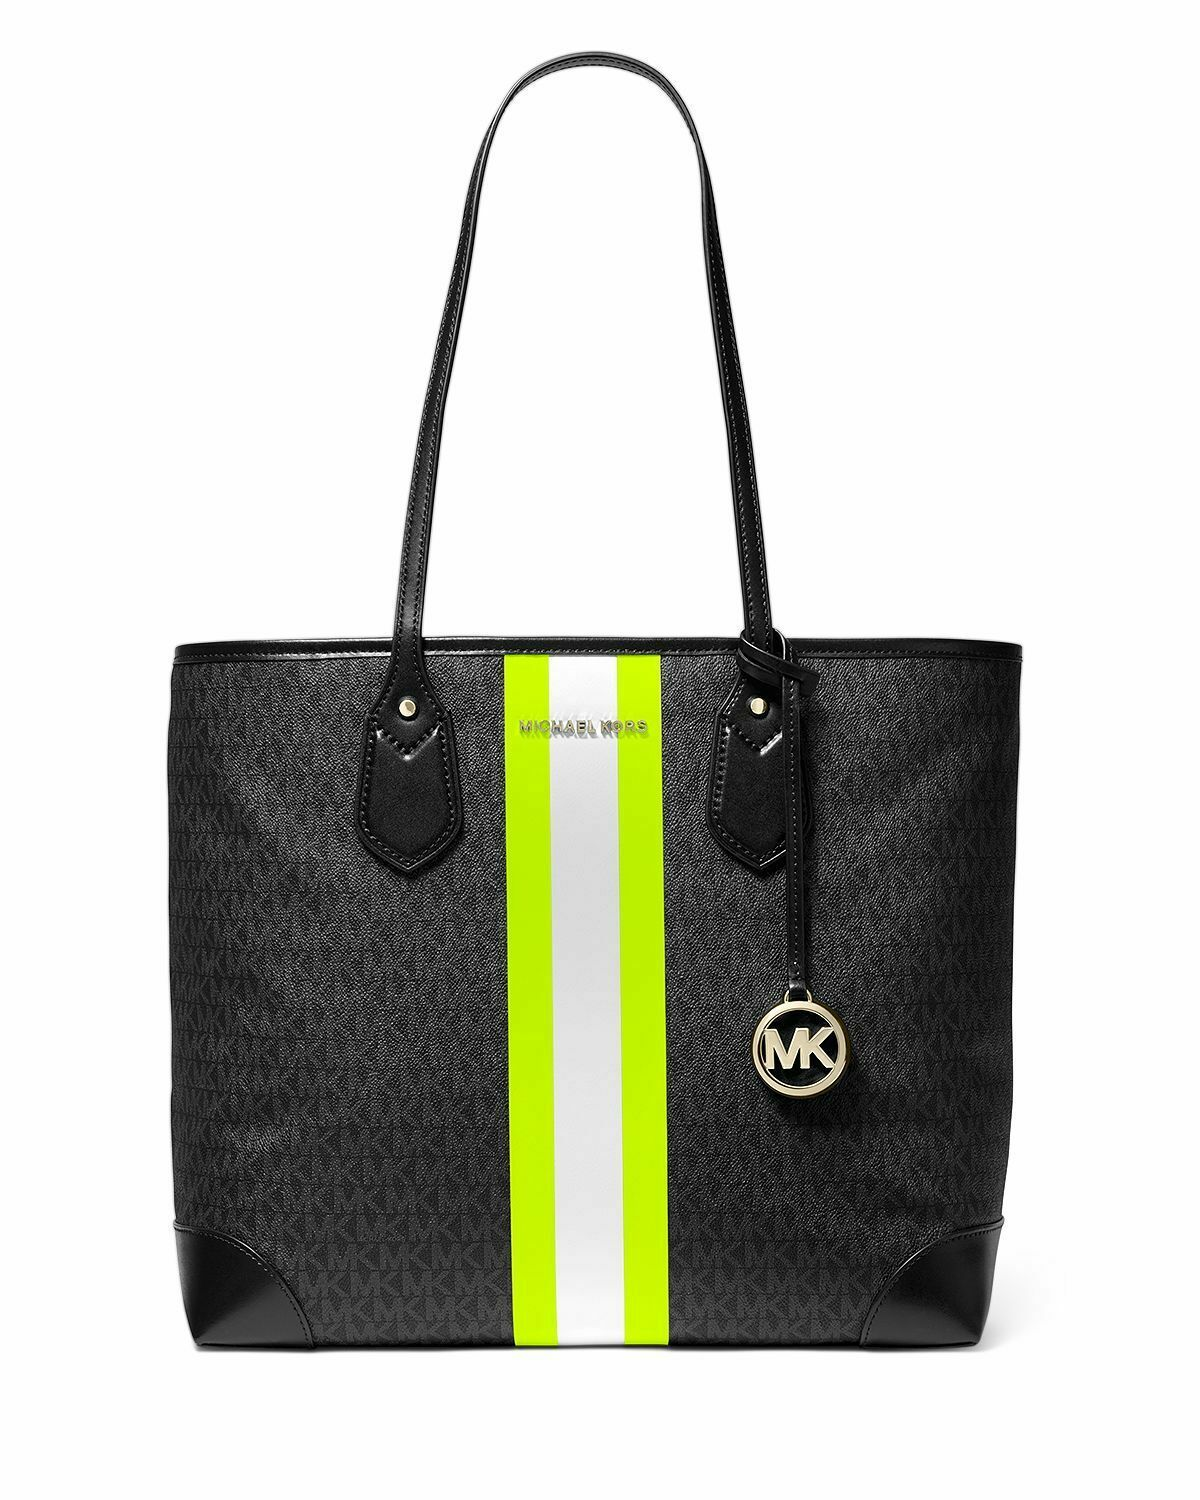 MICHAEL Michael Kors Eva Large Tote - Black/Neon Yellow